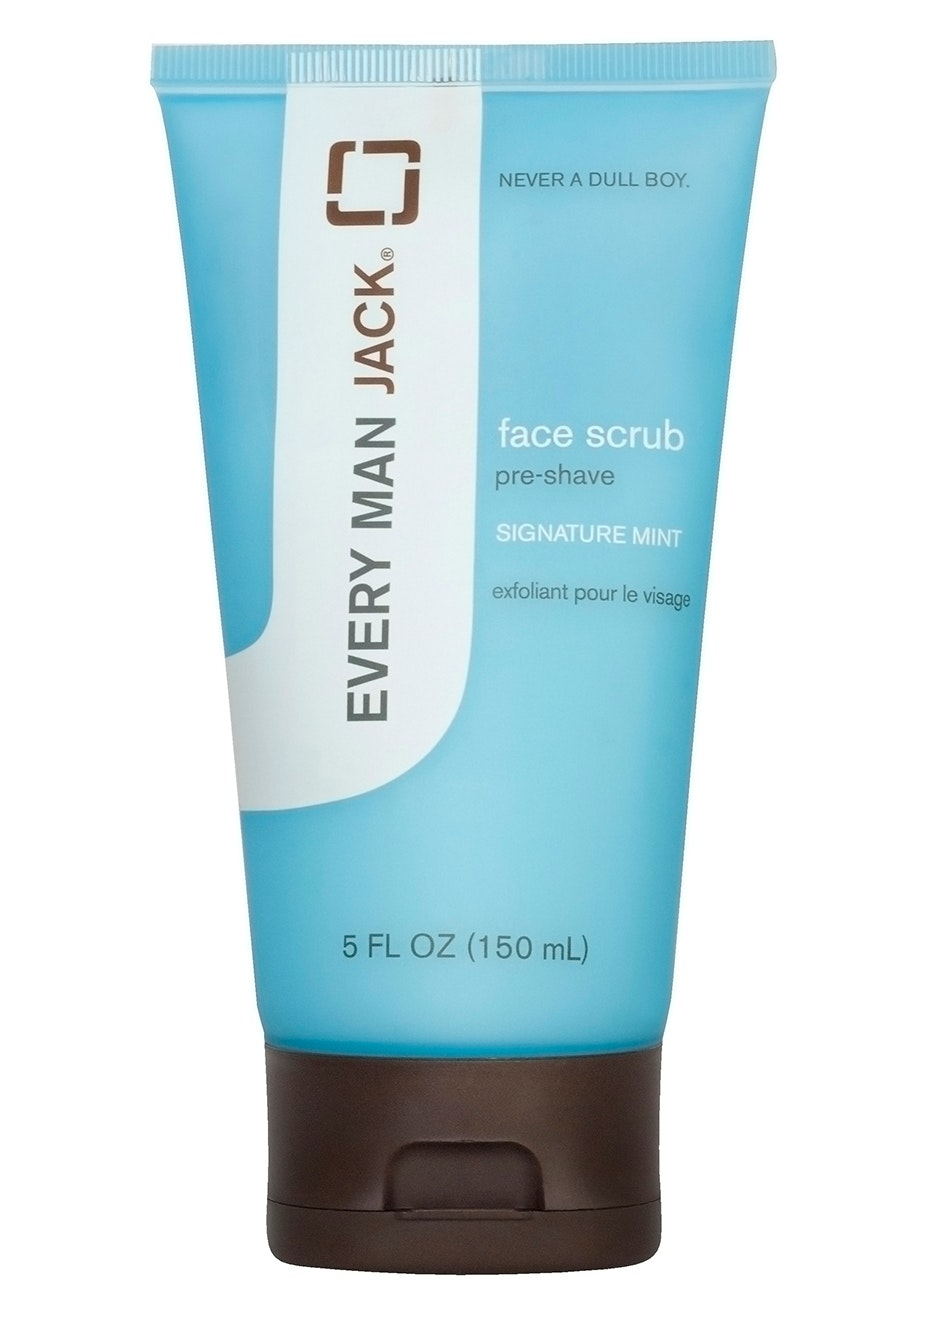 Every Man Jack - Face Scrub Signature Mint